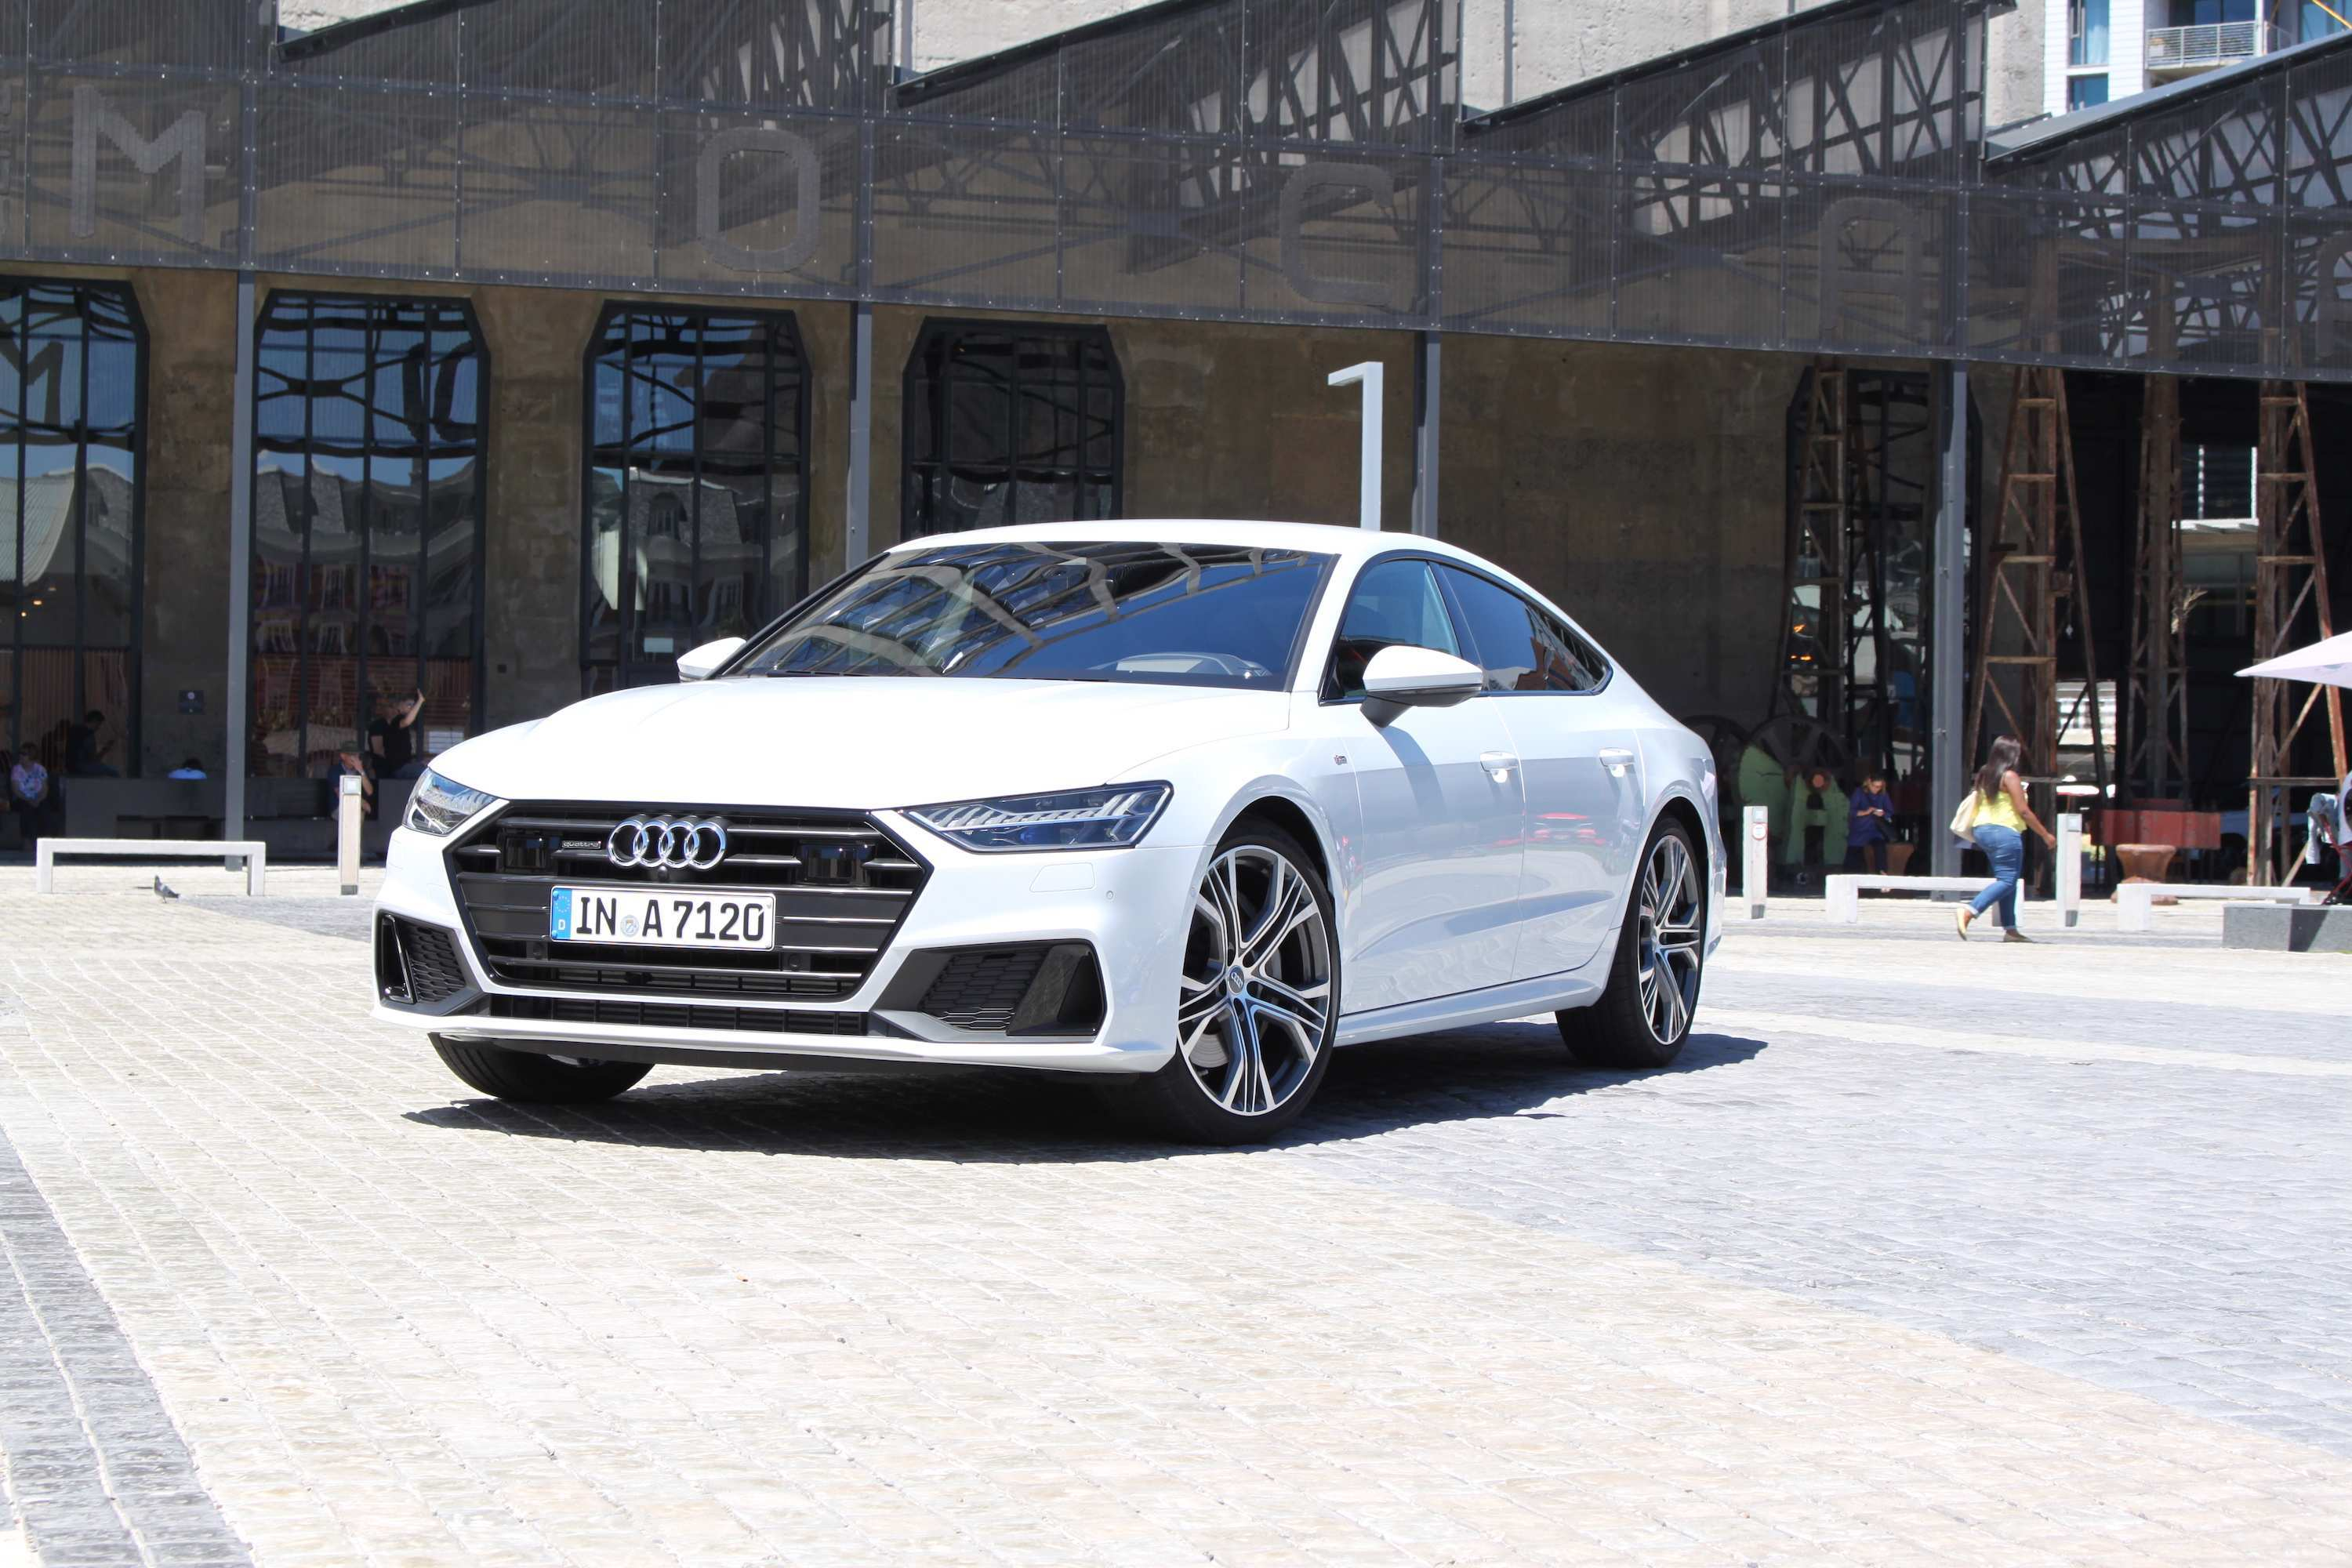 51 Gallery of 2019 Audi A7 Debut Wallpaper with 2019 Audi A7 Debut